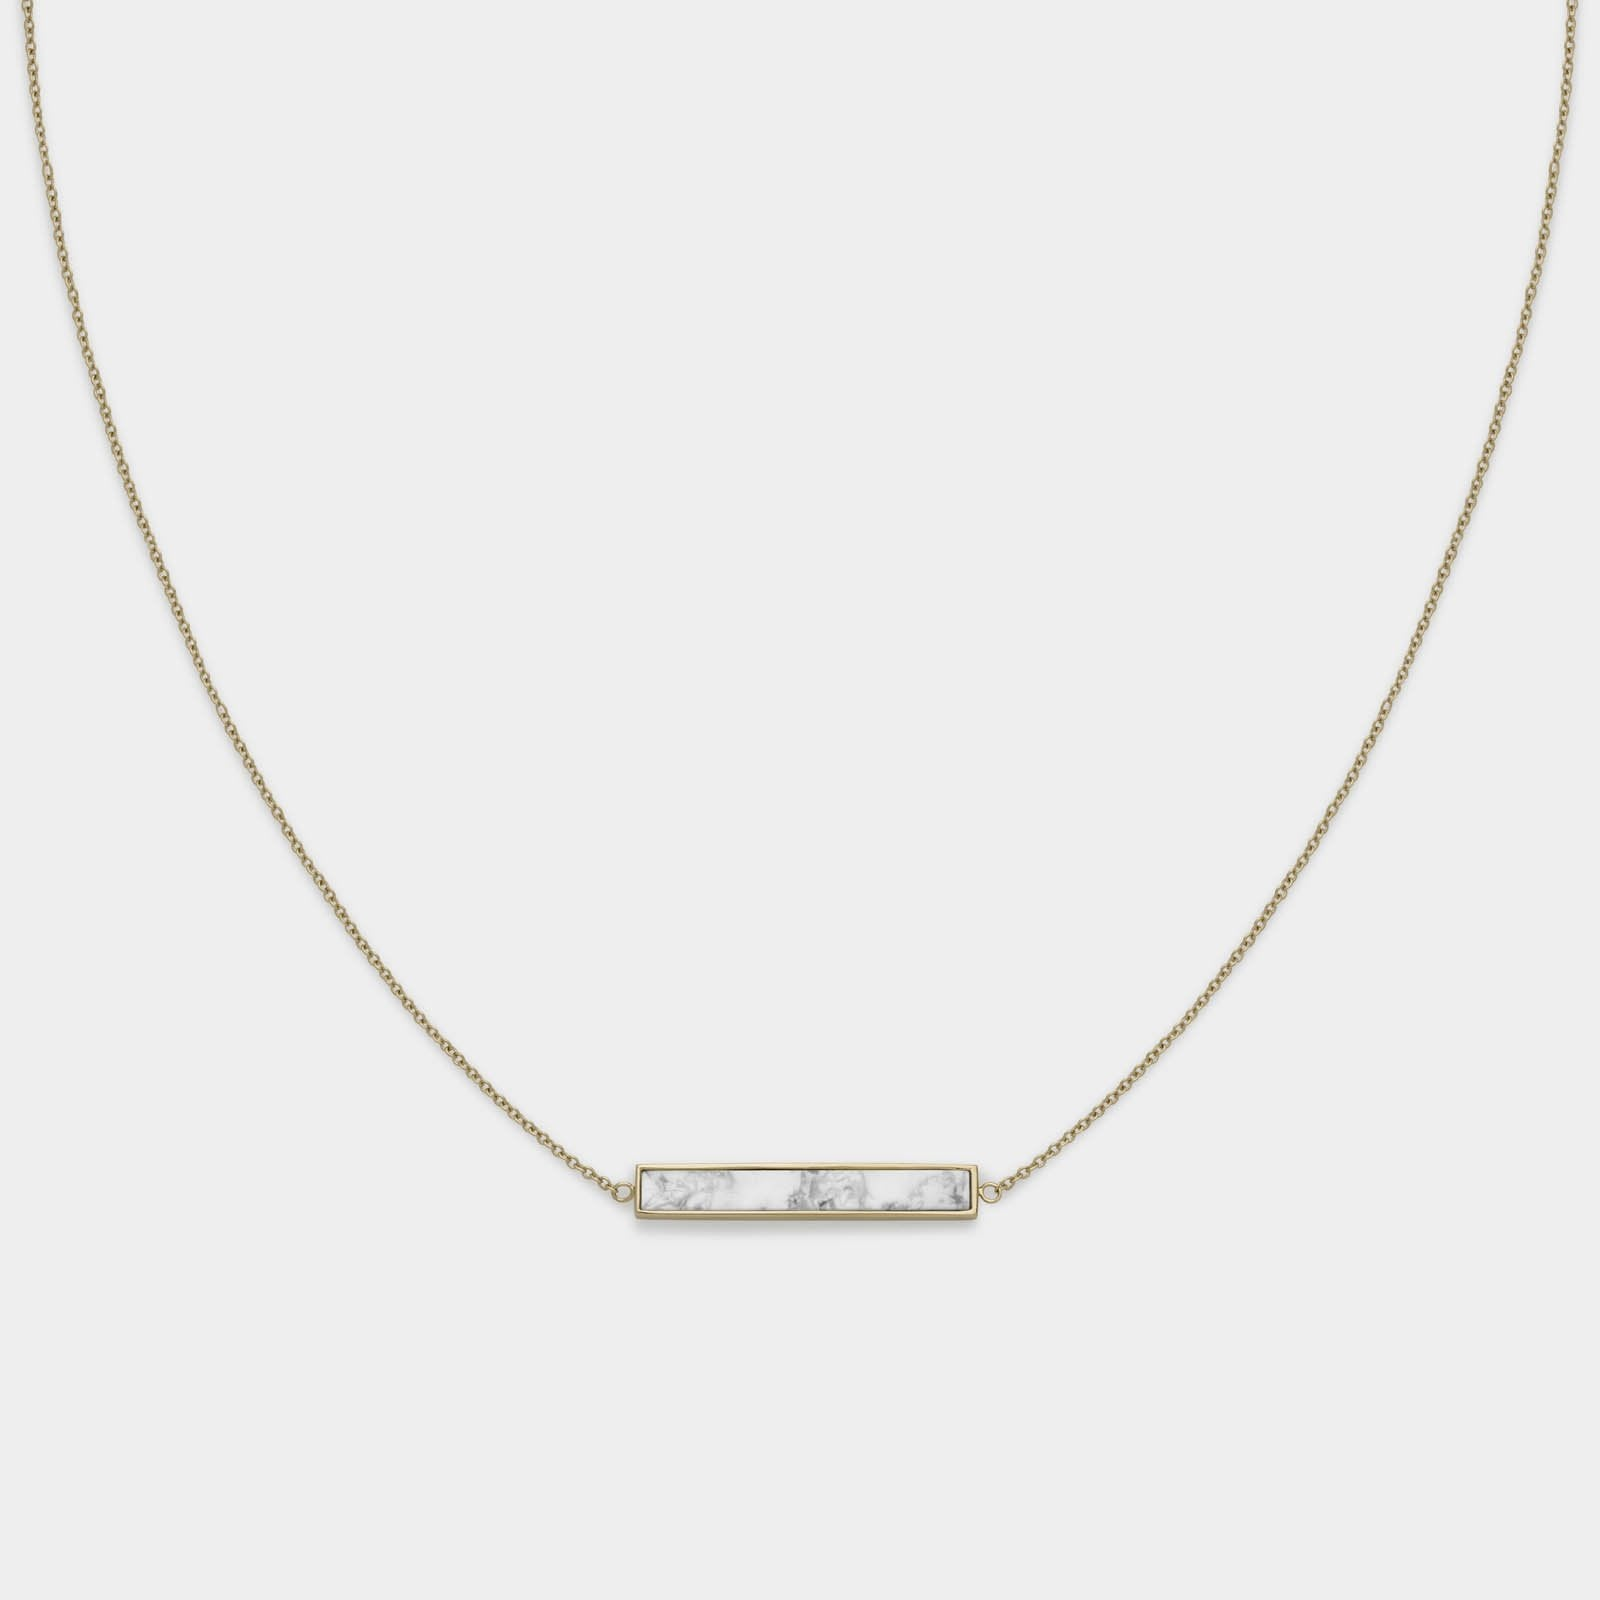 CLUSE Idylle Gold Marble Bar Necklace CLJ21009 - necklace